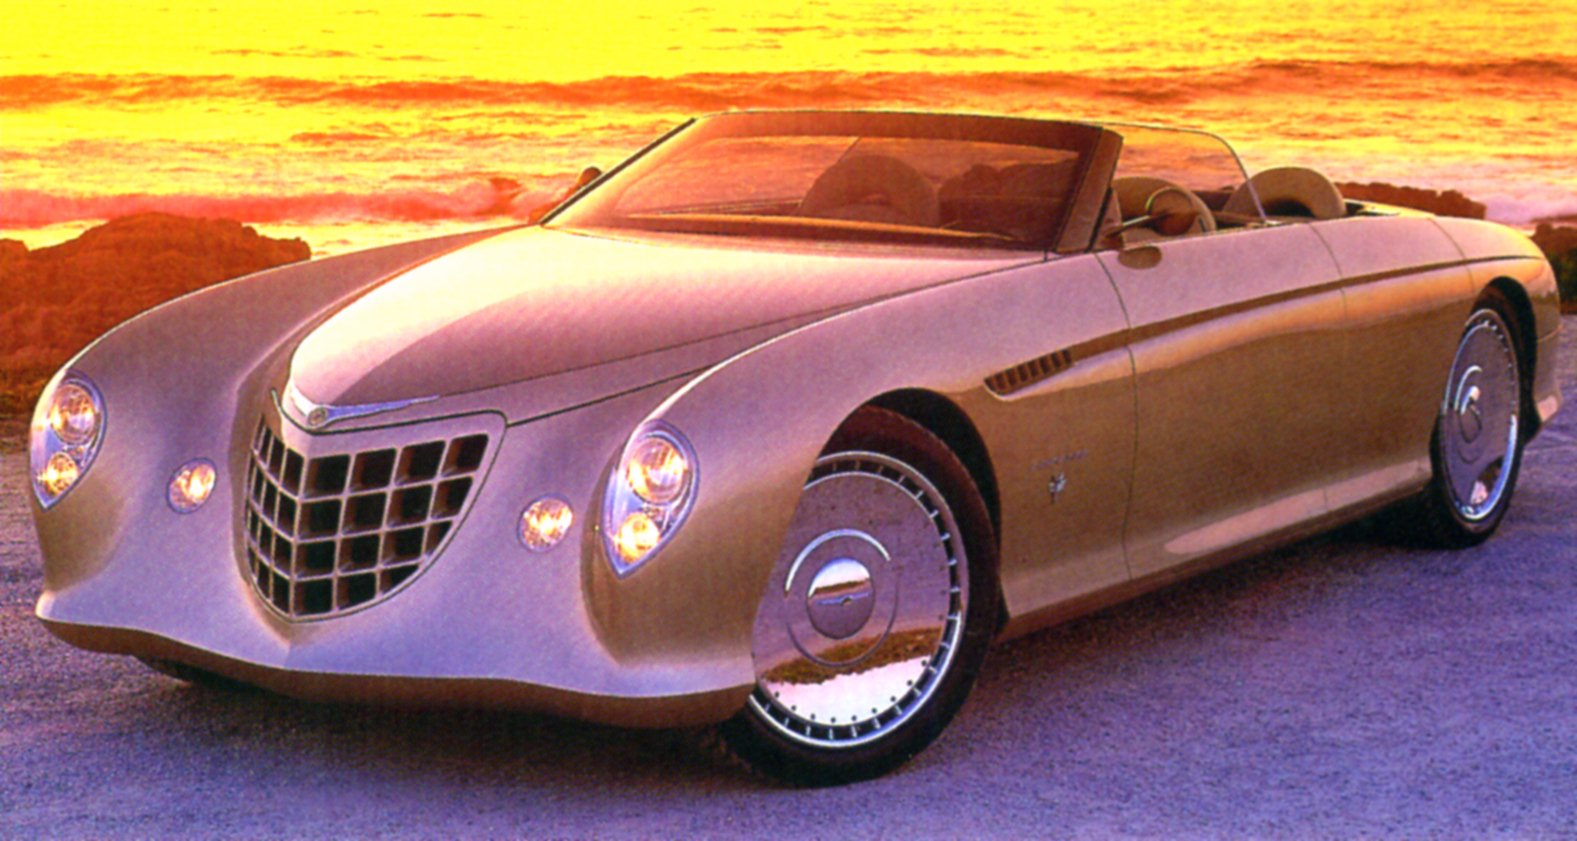 1997 Chrysler Phaeton - Concepts